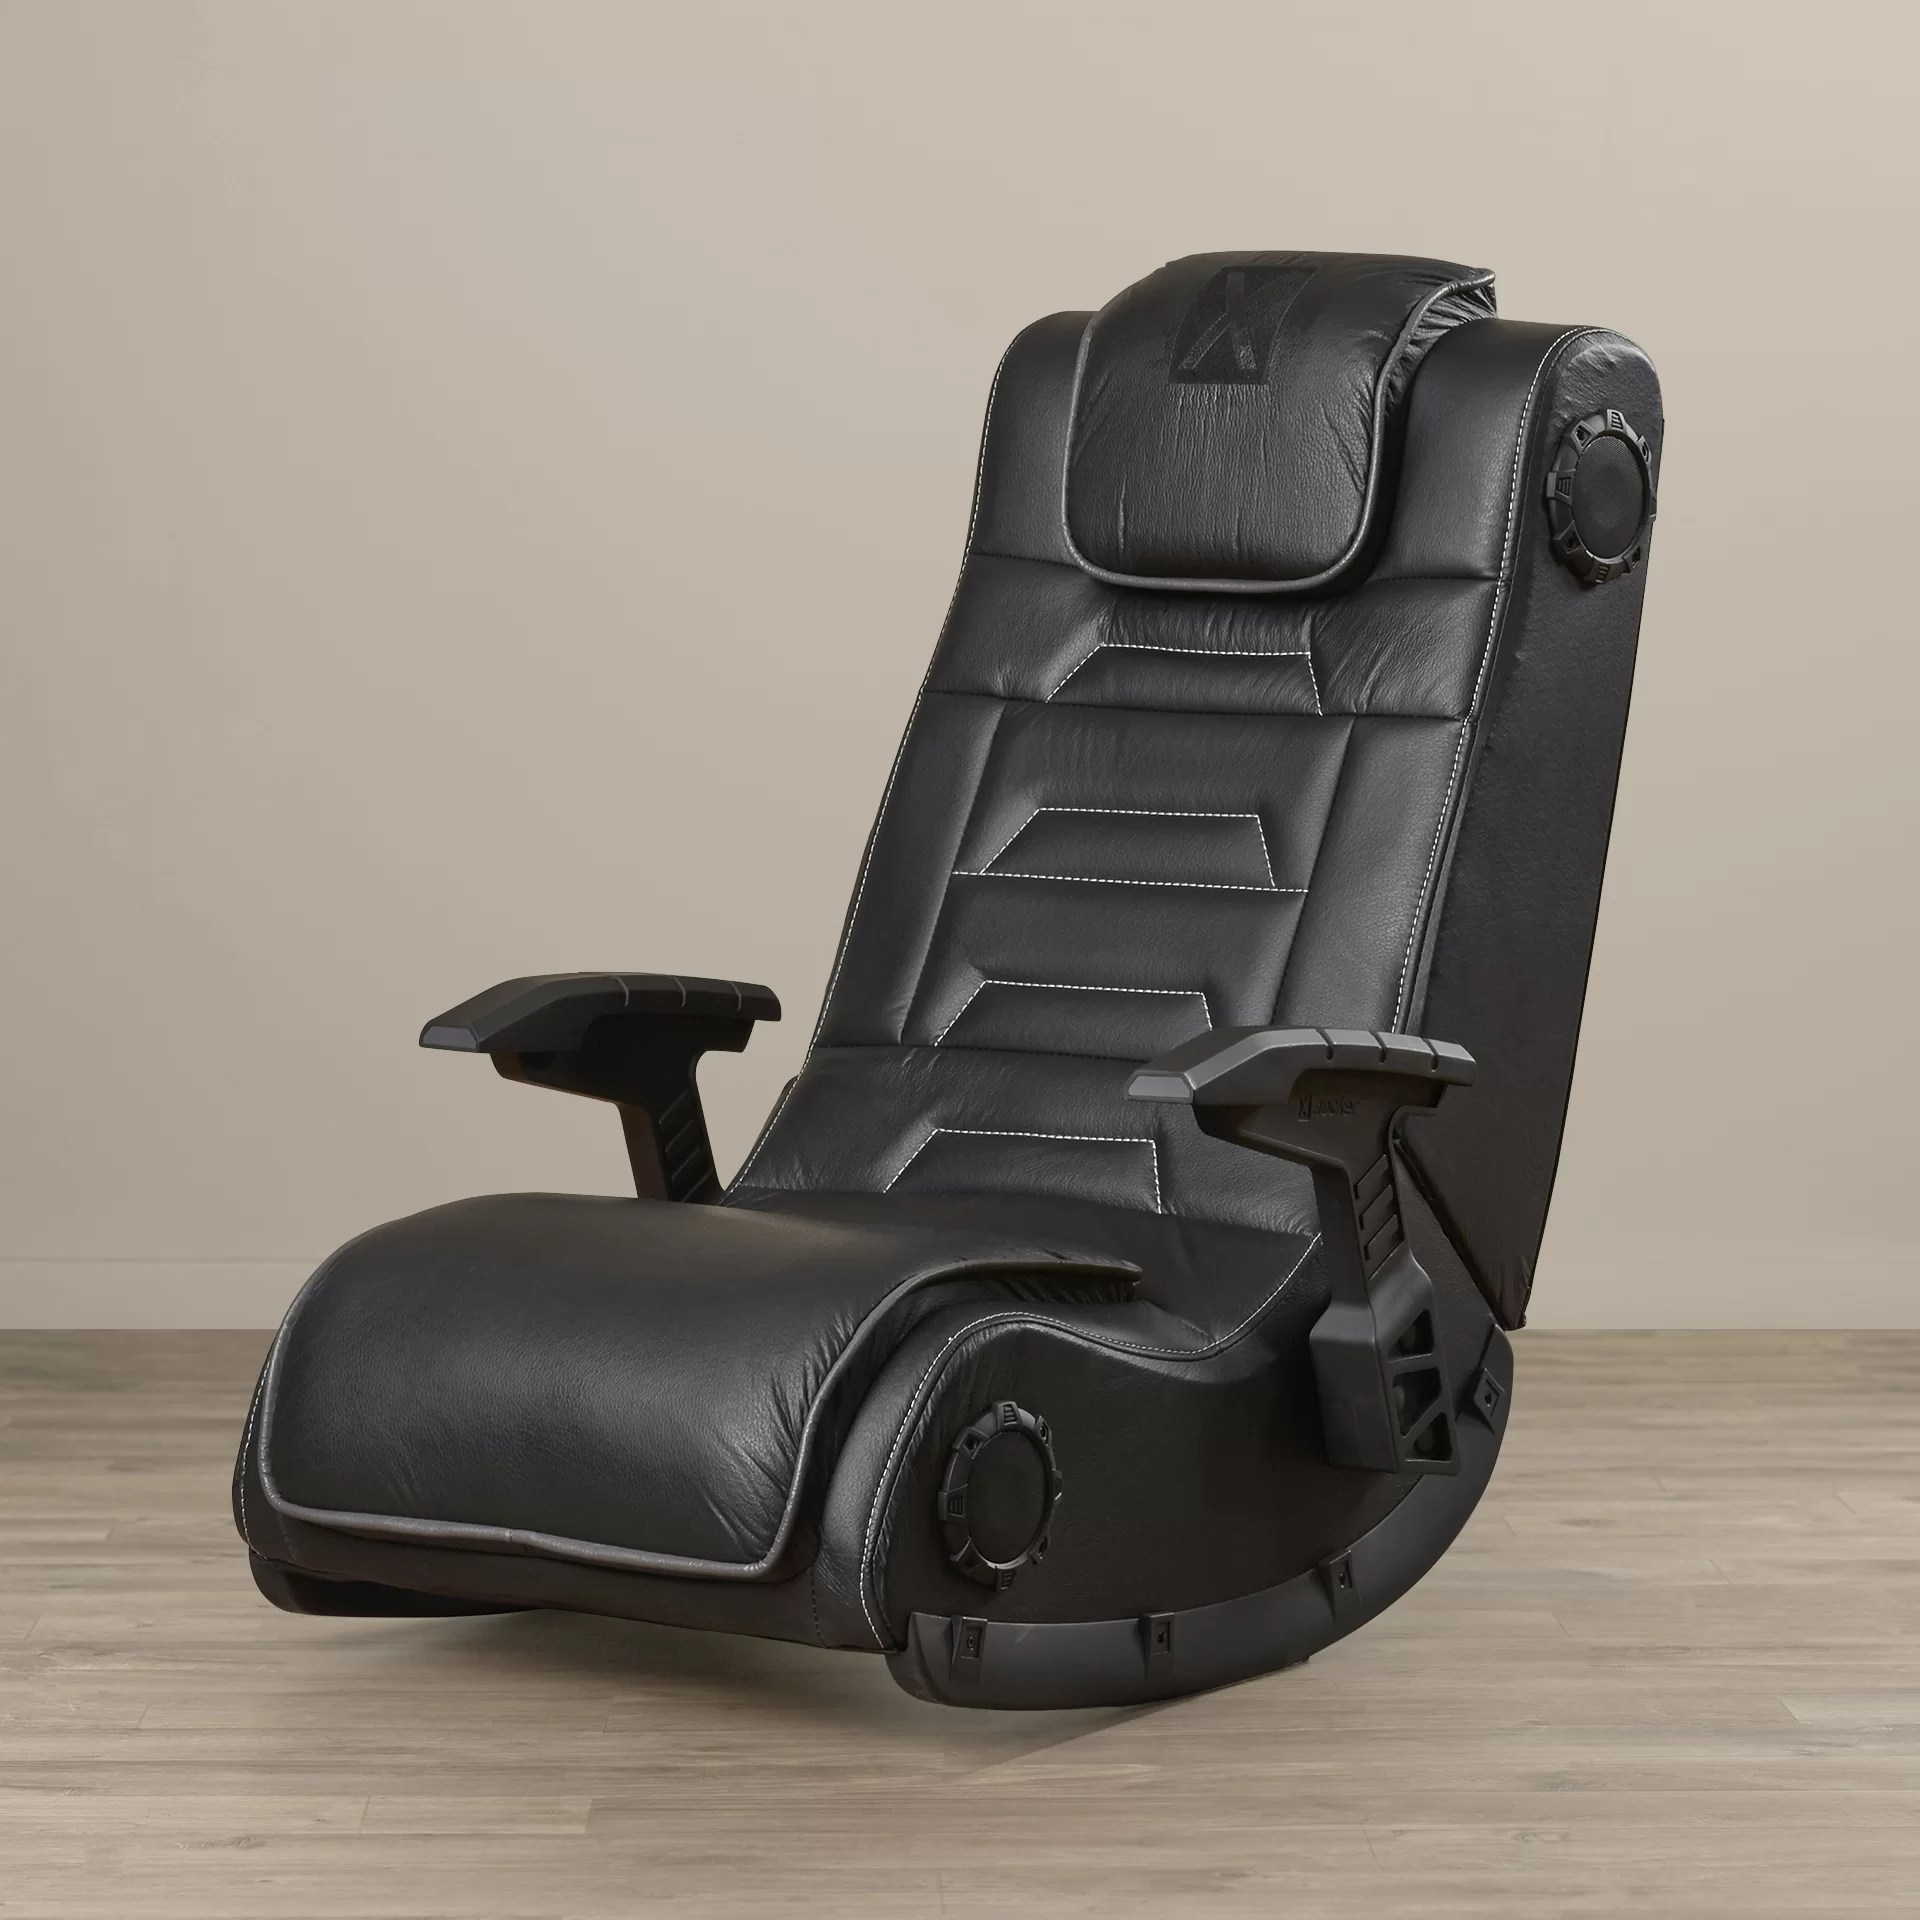 Video Game Chairs Wireless Video Rocker Game Chair